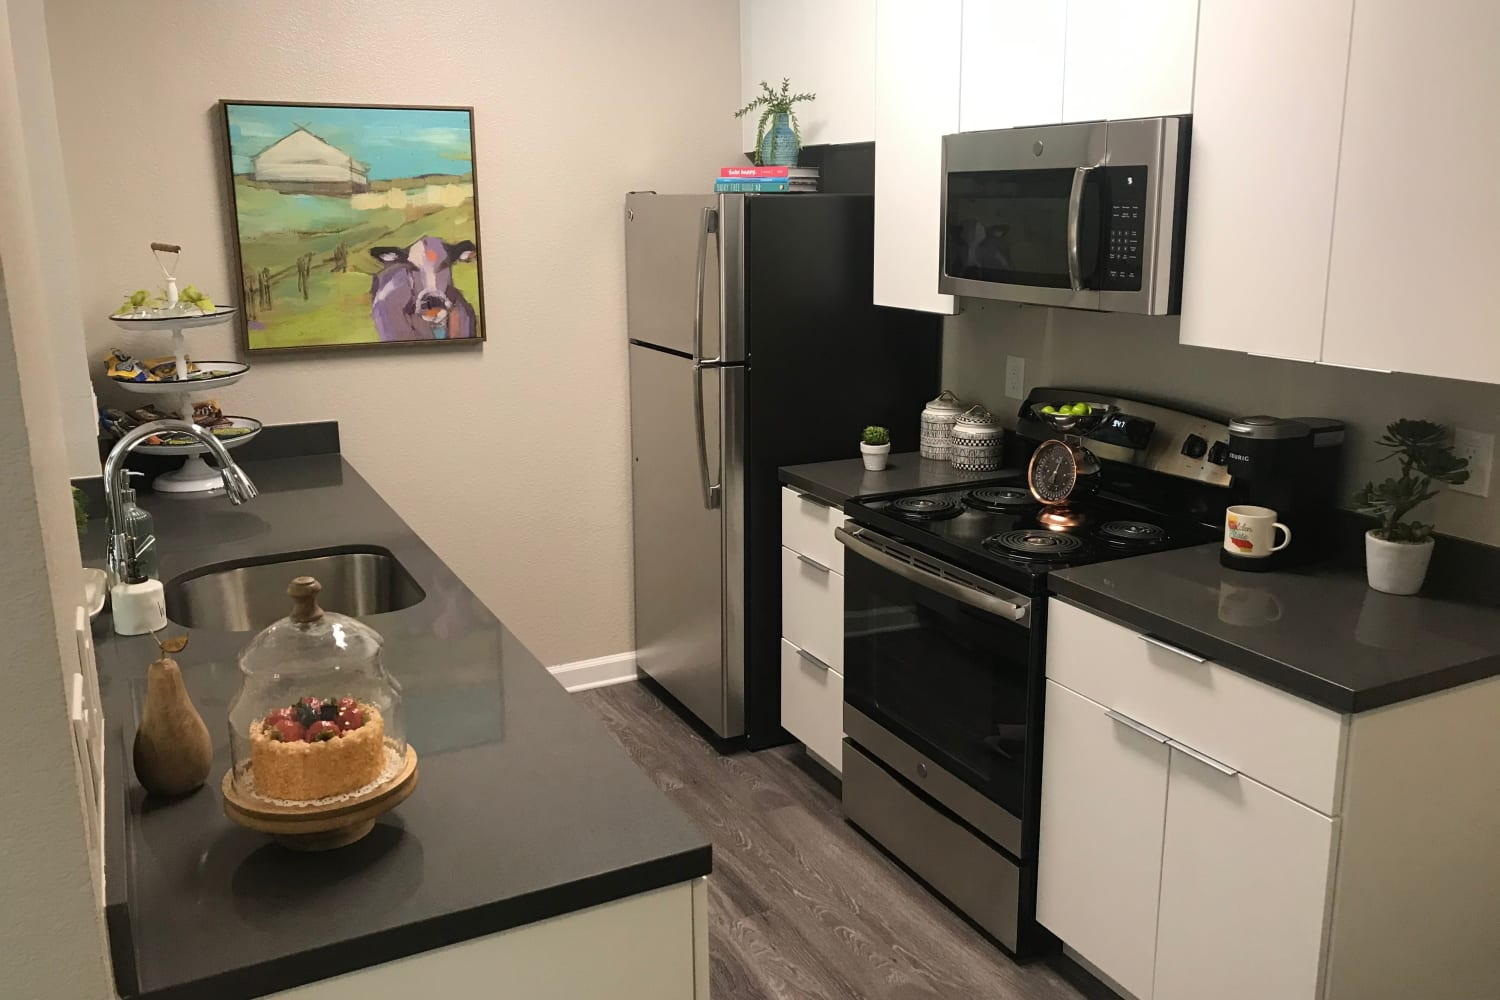 Wonderful open bedroom floor plans for rent at Cotton Wood Apartments in Dublin, California